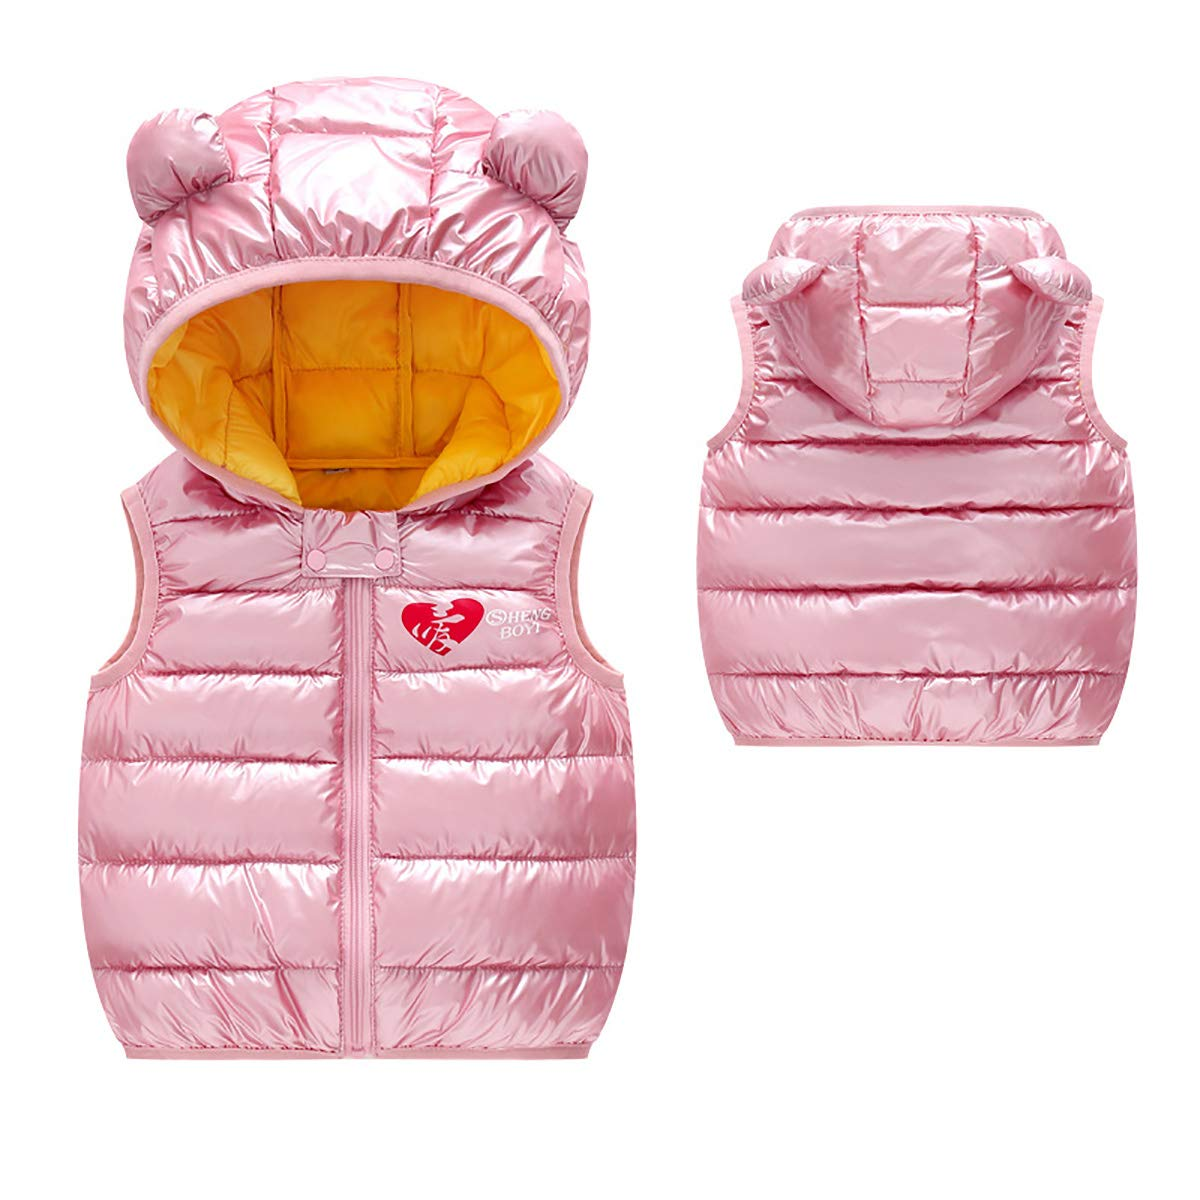 FASH Baby Girls Boys Lovely Warm Waistcoat Kids Autumn Winter Windproof Sleeveless Jackets Lightweight Hooded Vests for 2-6 Y,Pink,90cm by FASH